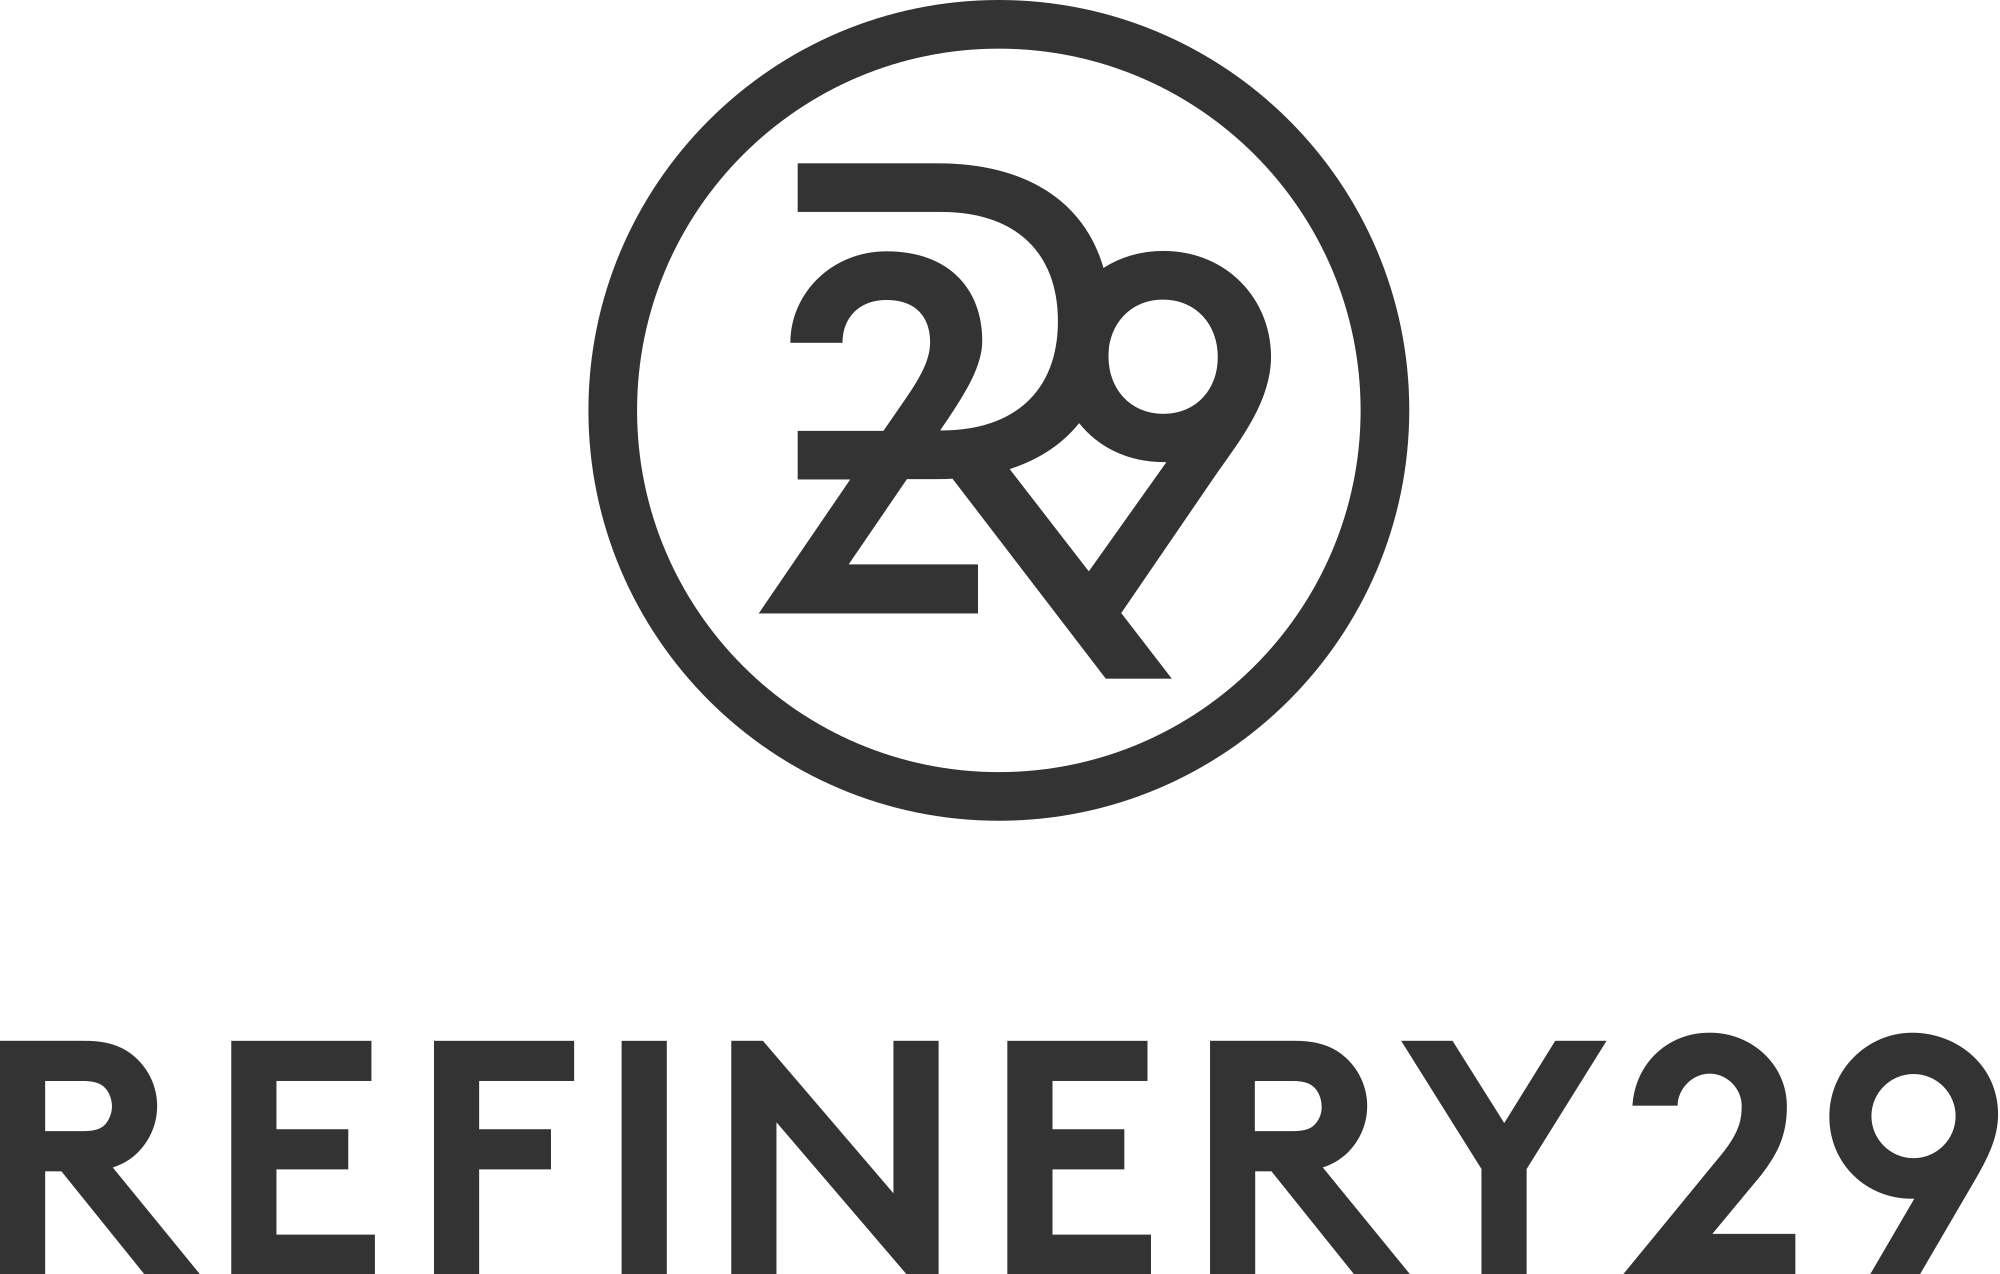 Refinery29_logo_Dr Claney.png